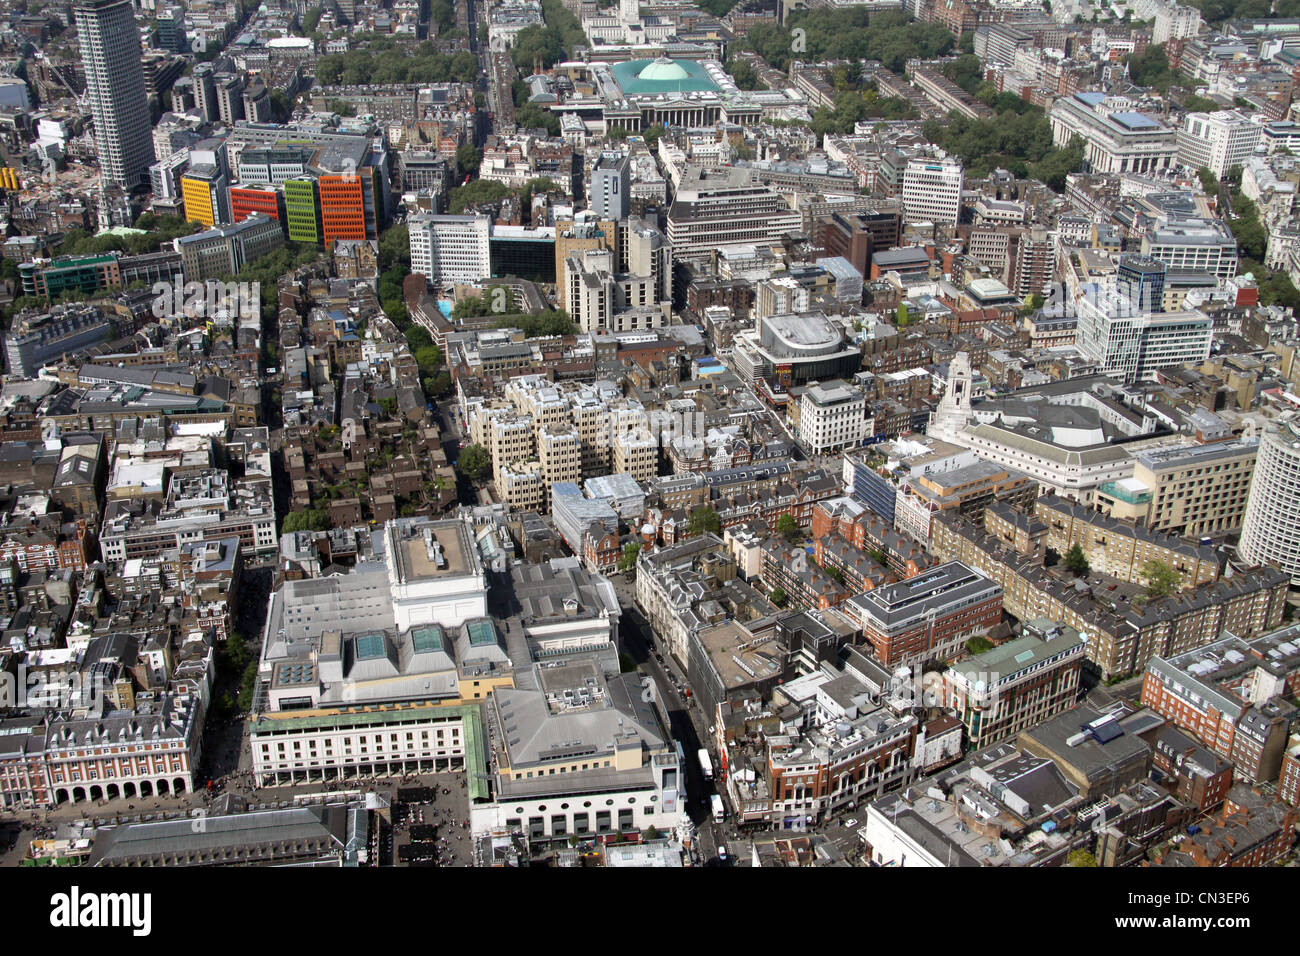 Ravishing Aerial View From The Strand And Aldwych Covent Garden London Wc  With Handsome Aerial View From The Strand And Aldwych Covent Garden London Wc With Amazing Garden Cake Decorations Also Cheap Garden Gates Uk In Addition Metal Garden Table And Chairs Uk And Tuttons Covent Garden Menu As Well As Flats For Sale Queens Club Gardens Additionally Garden Storage Cupboards From Alamycom With   Handsome Aerial View From The Strand And Aldwych Covent Garden London Wc  With Amazing Aerial View From The Strand And Aldwych Covent Garden London Wc And Ravishing Garden Cake Decorations Also Cheap Garden Gates Uk In Addition Metal Garden Table And Chairs Uk From Alamycom